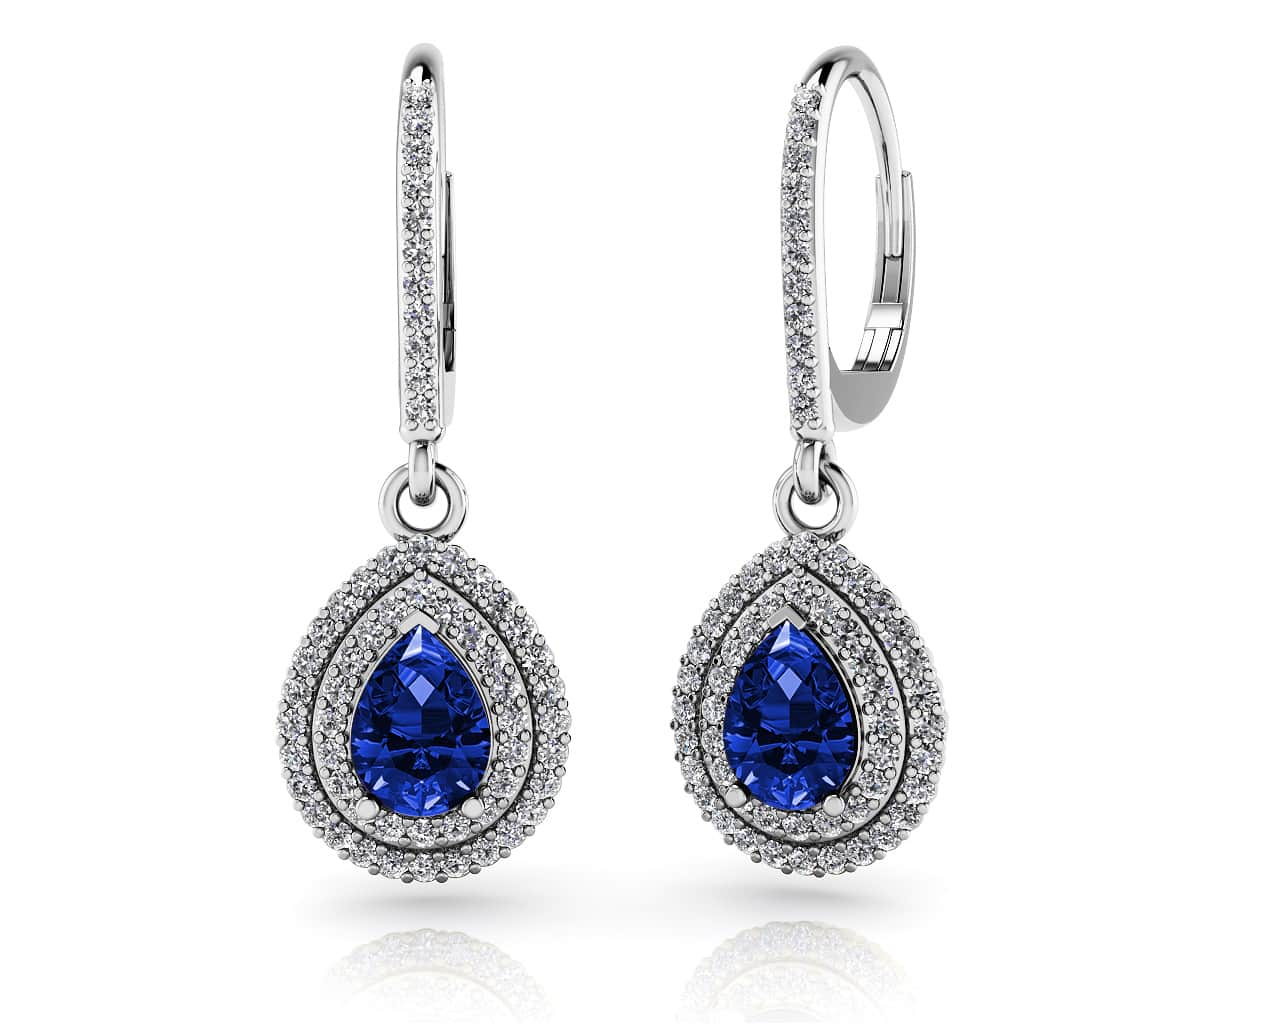 New Vintage Teardrop Diamond And Gemstone Earrings